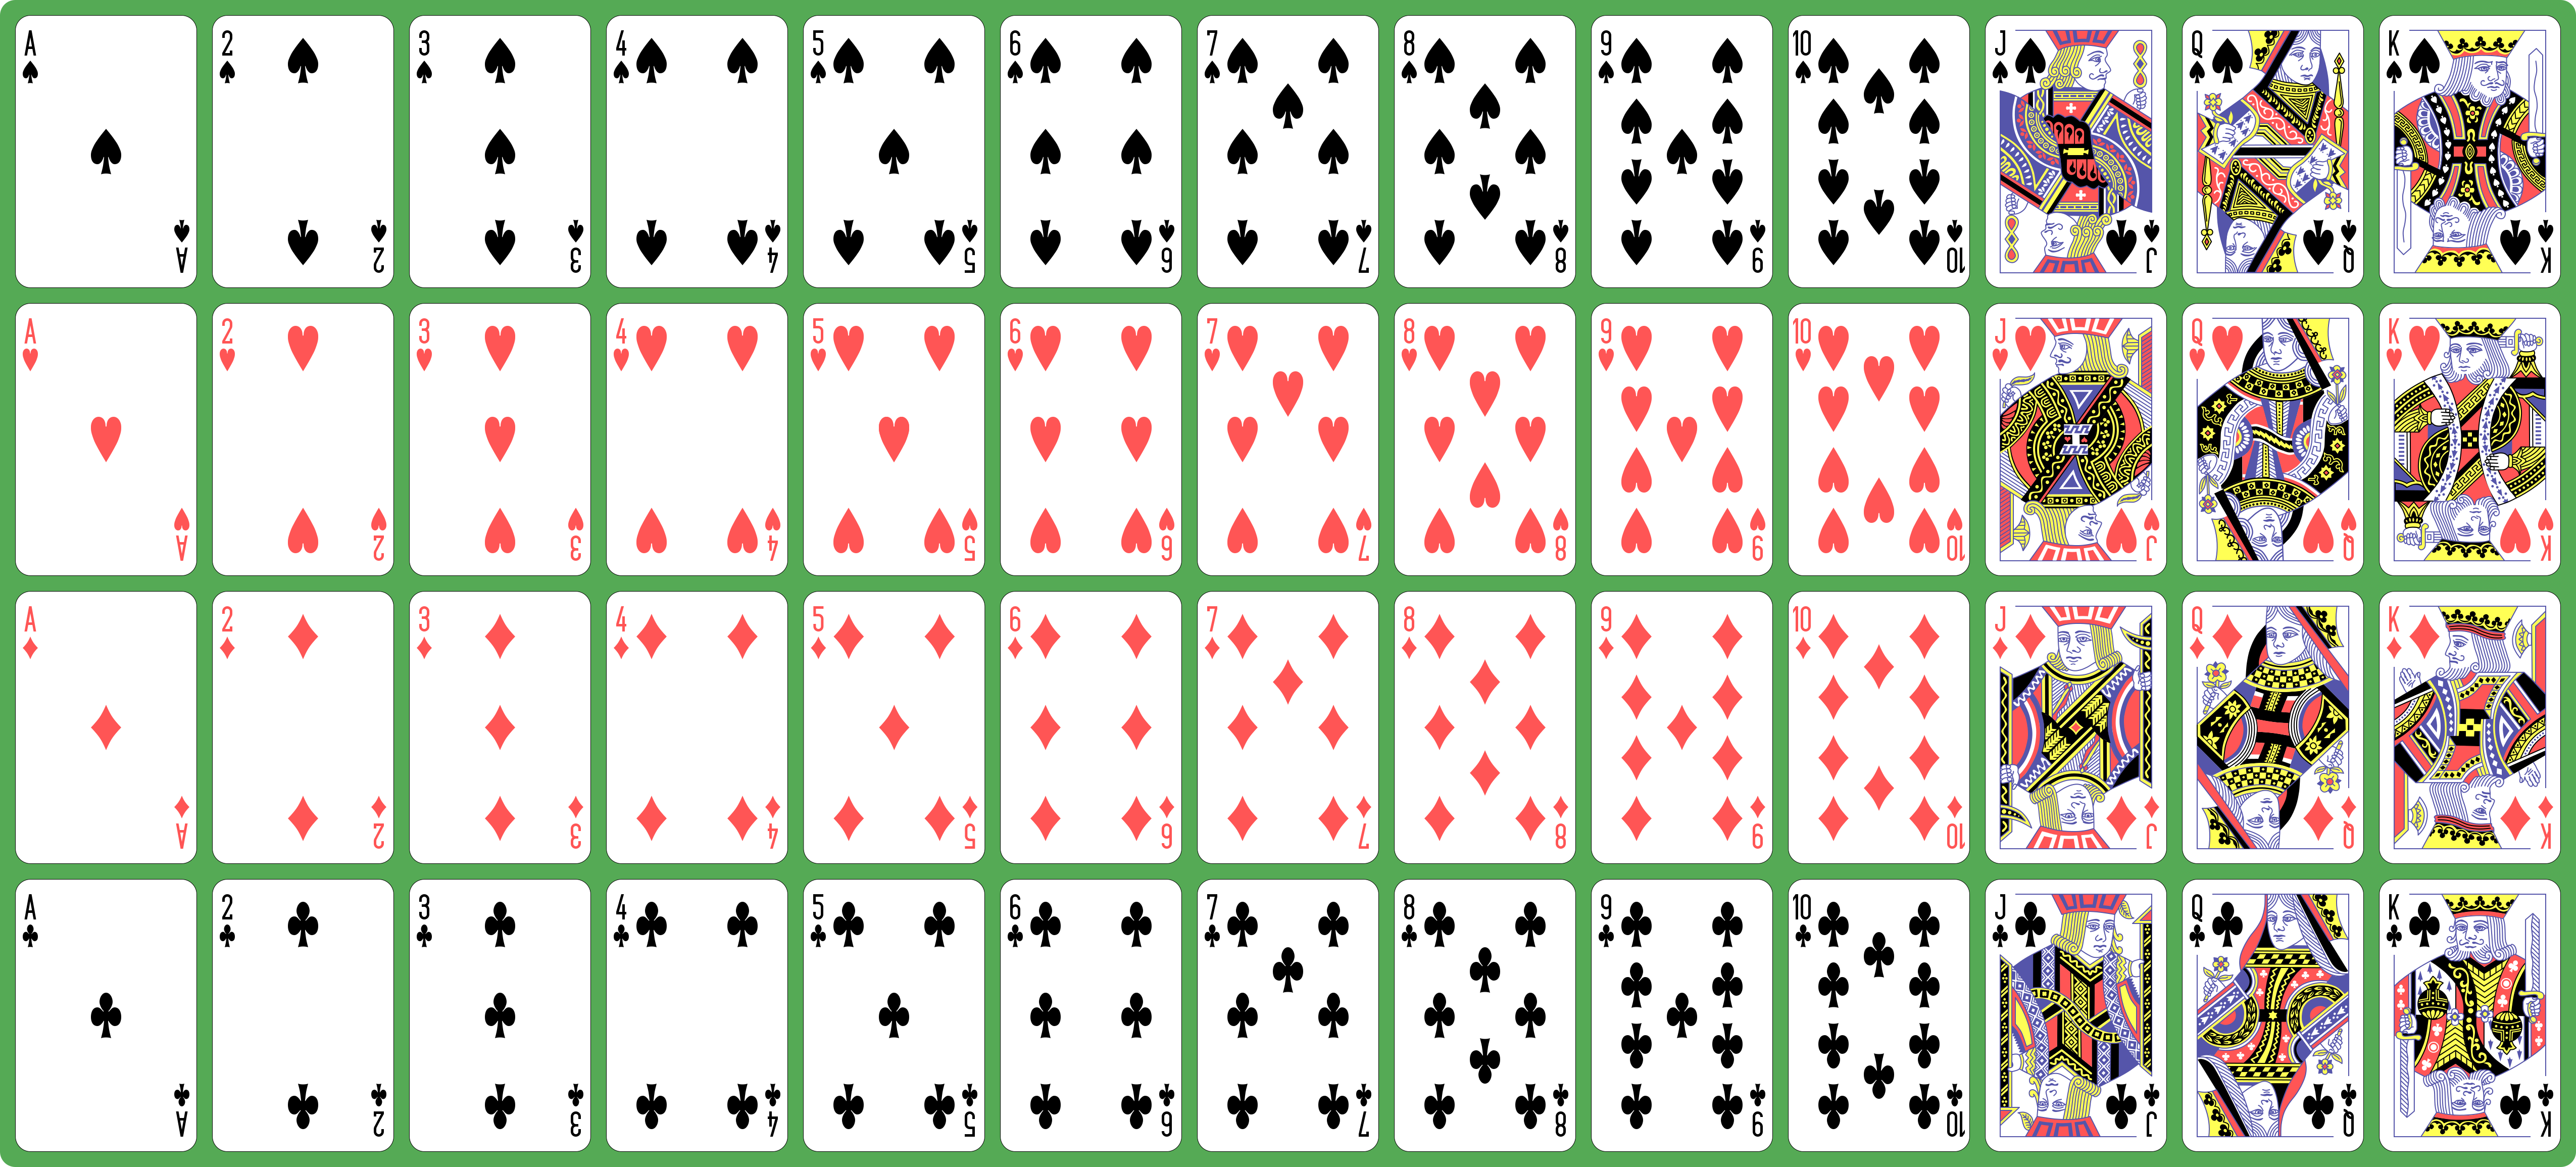 File:English pattern playing cards deck.svg.